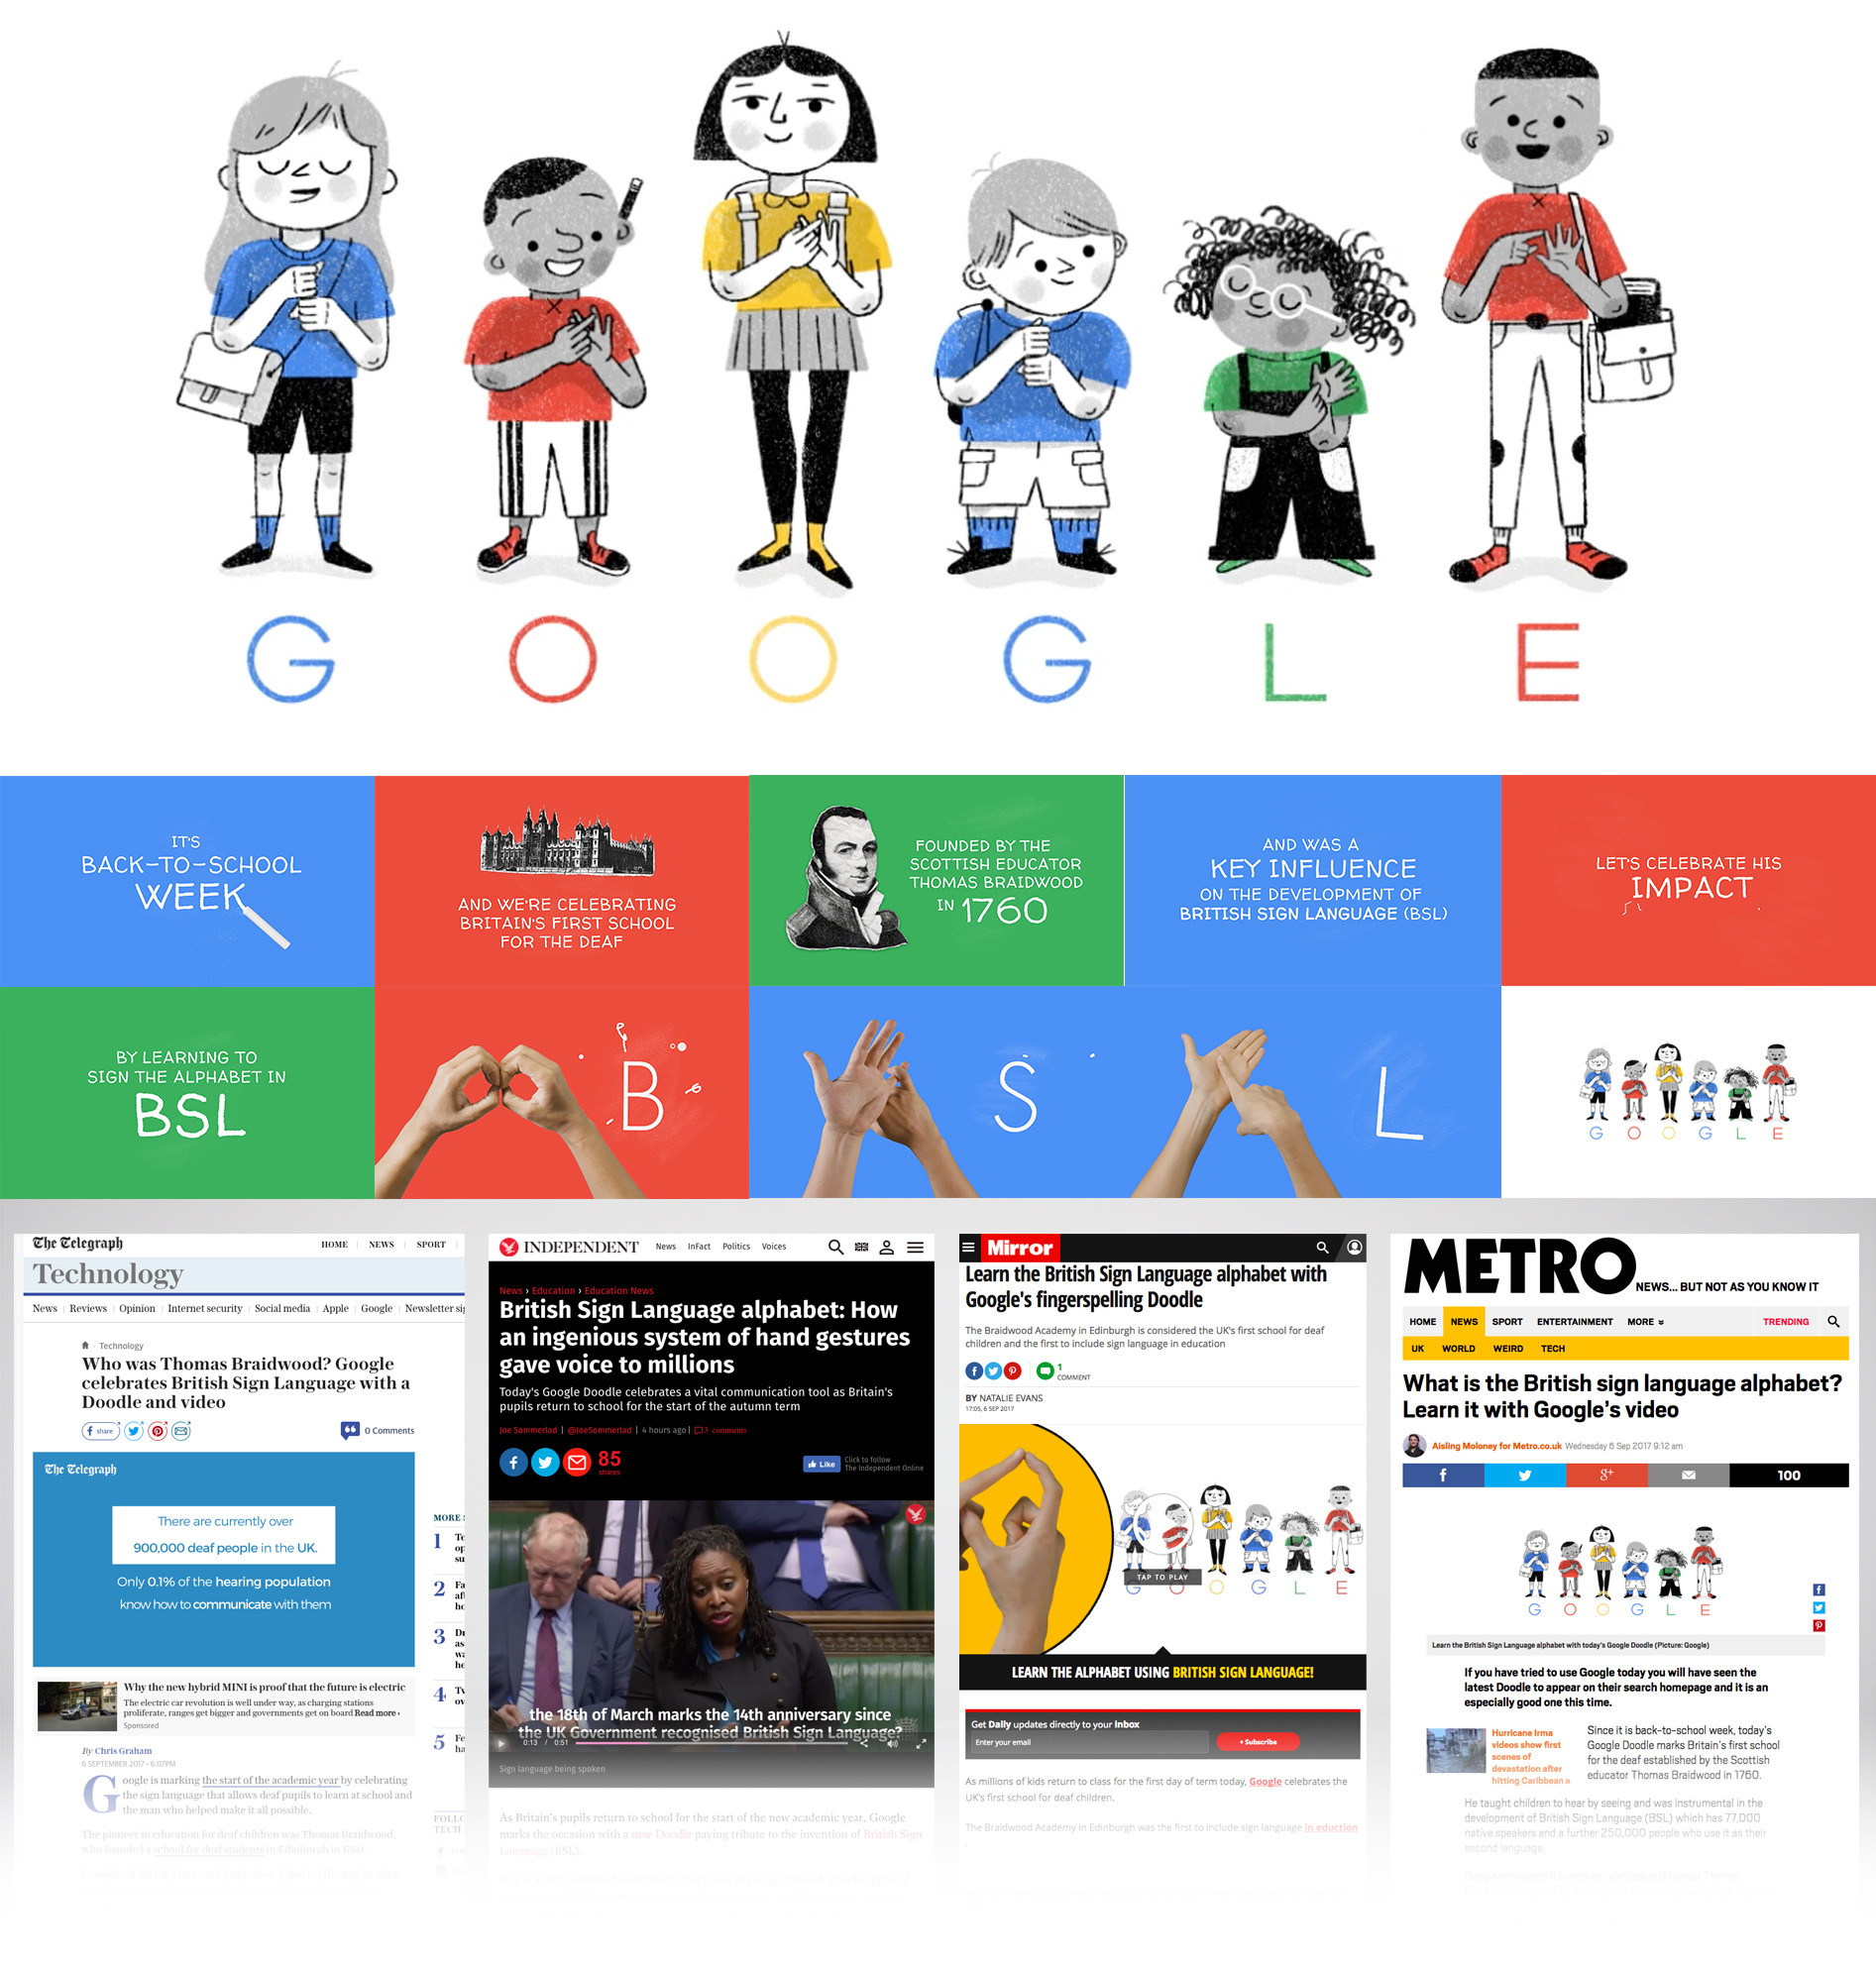 Google Doodle and video with news articles